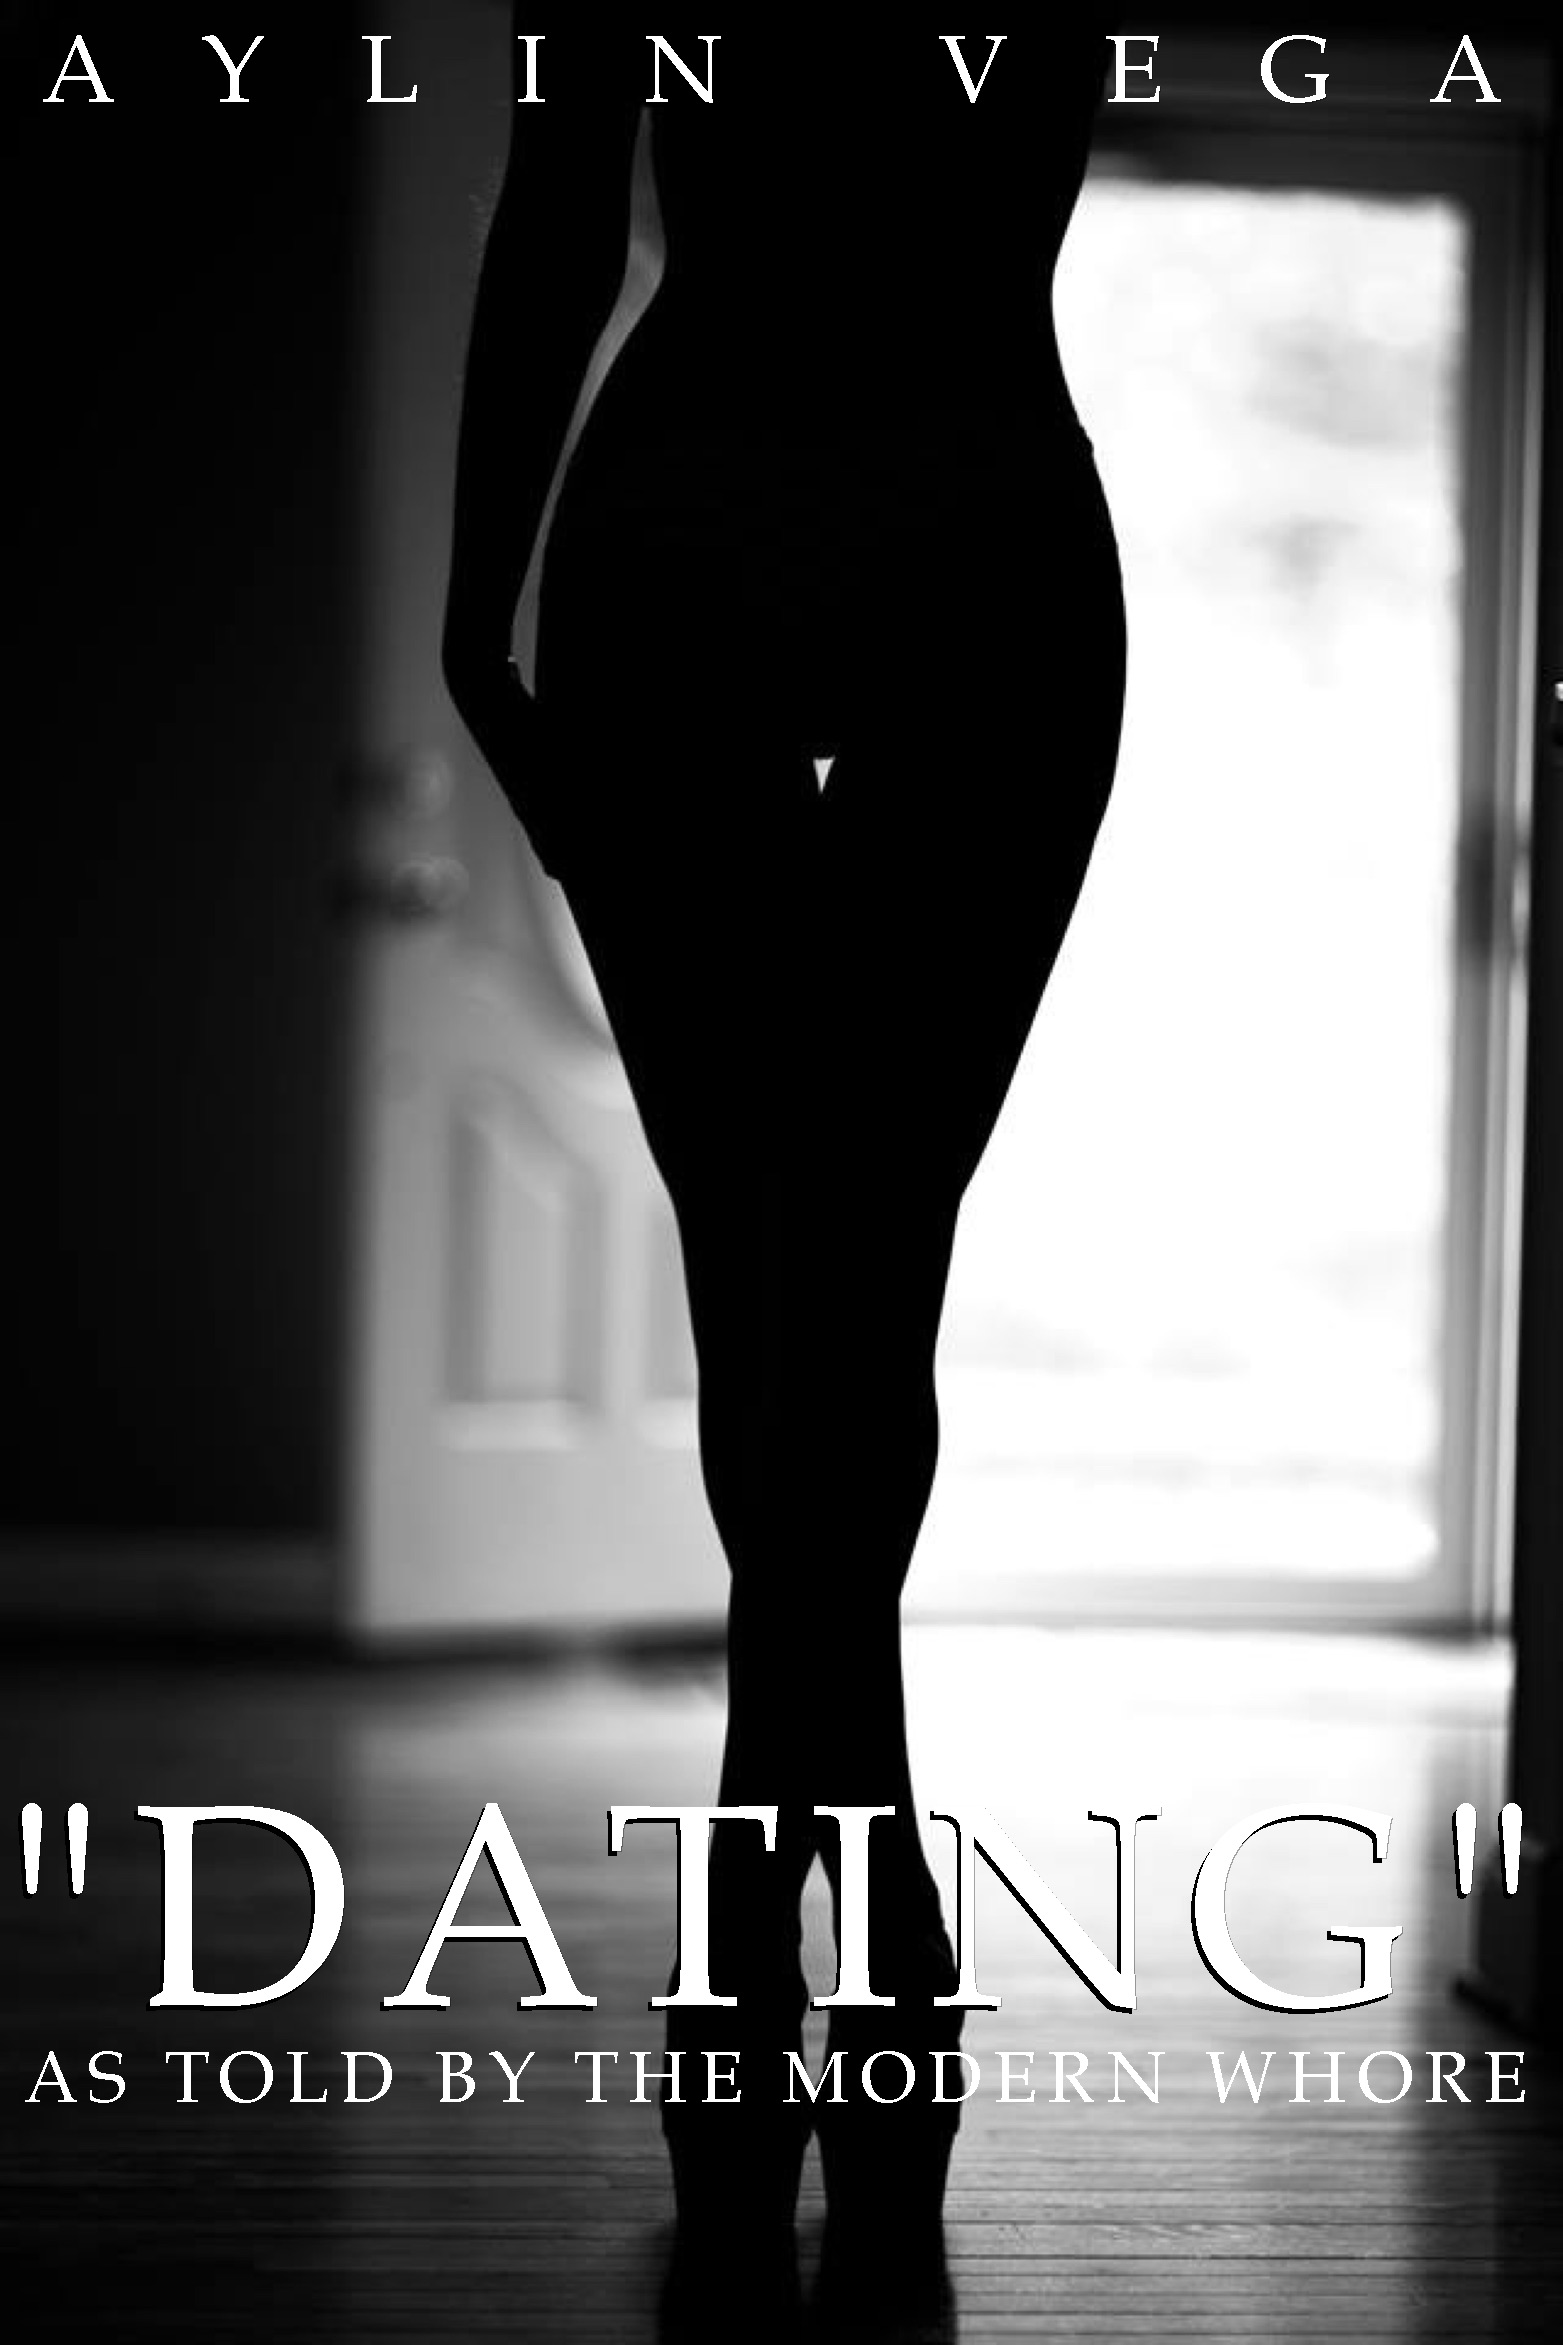 """Dating"" As Told By The Modern Whore by Aylin Vega  978-1941771-04-4  Goodreads  -  Google Books    $6.99 download   Available  from:  aois21 market  -  Smashwords     Amazon  -  KoboBooks  -  Barnes & Noble  -  GooglePlay  -  iBookstore"